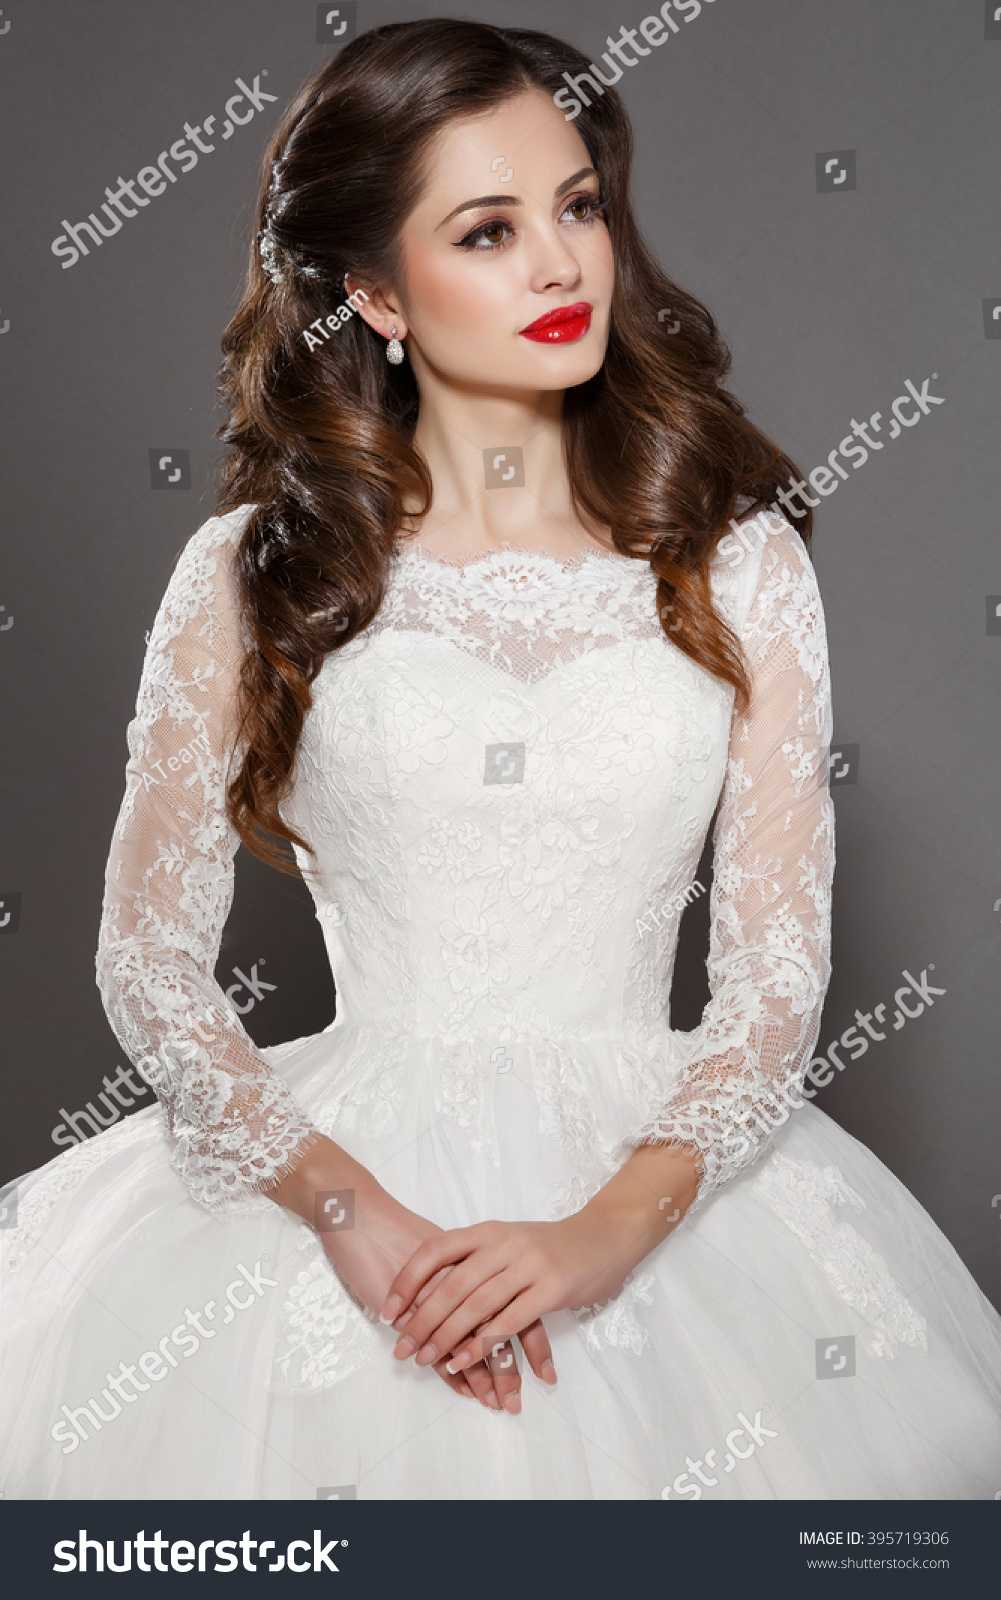 Royalty-free Beautiful Bride Portrait wedding makeup… #395719306 ...